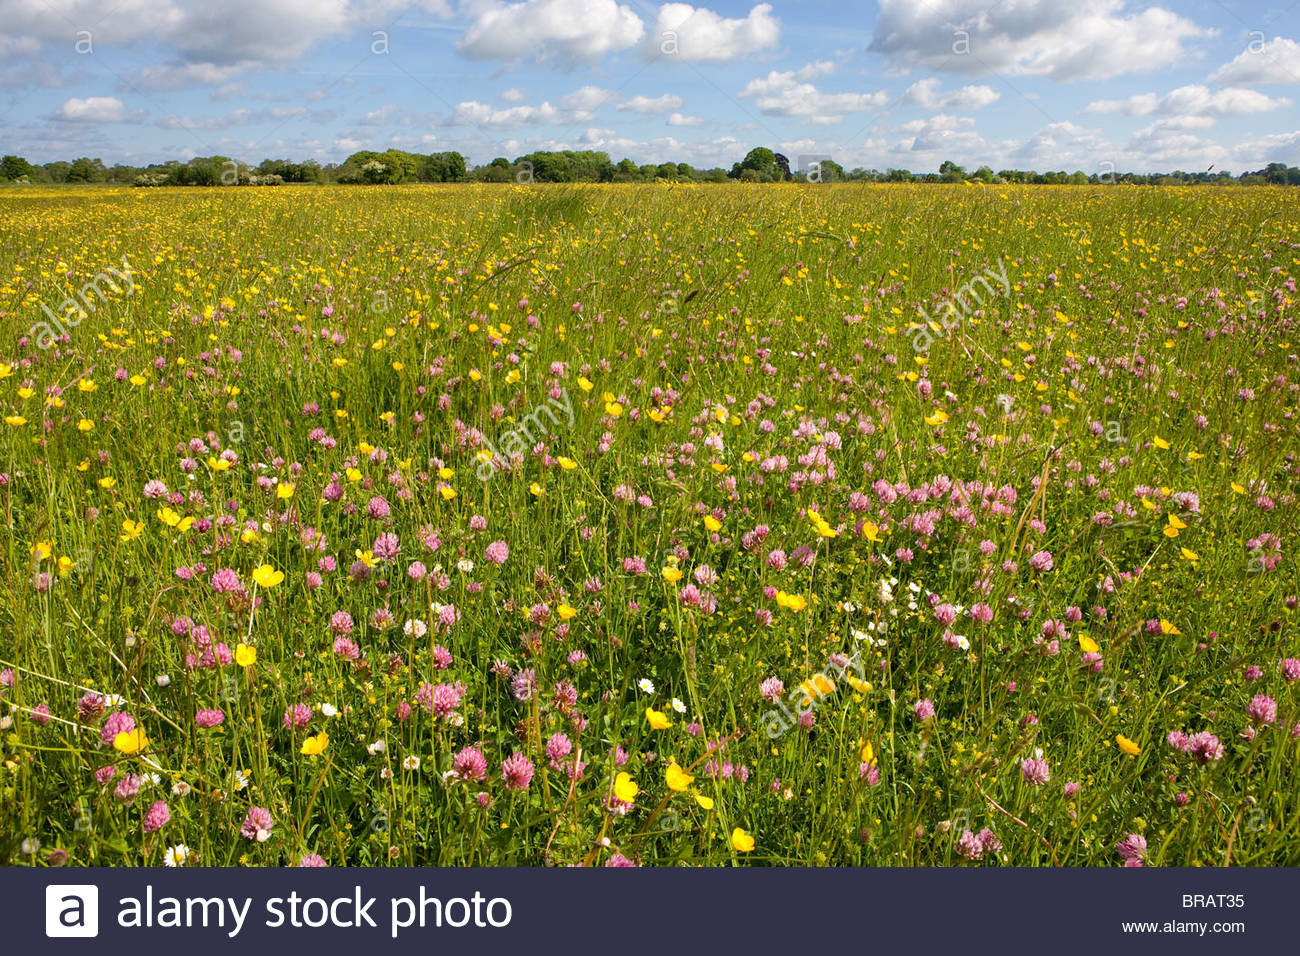 Tranquil field of blooming buttercups - Stock Image